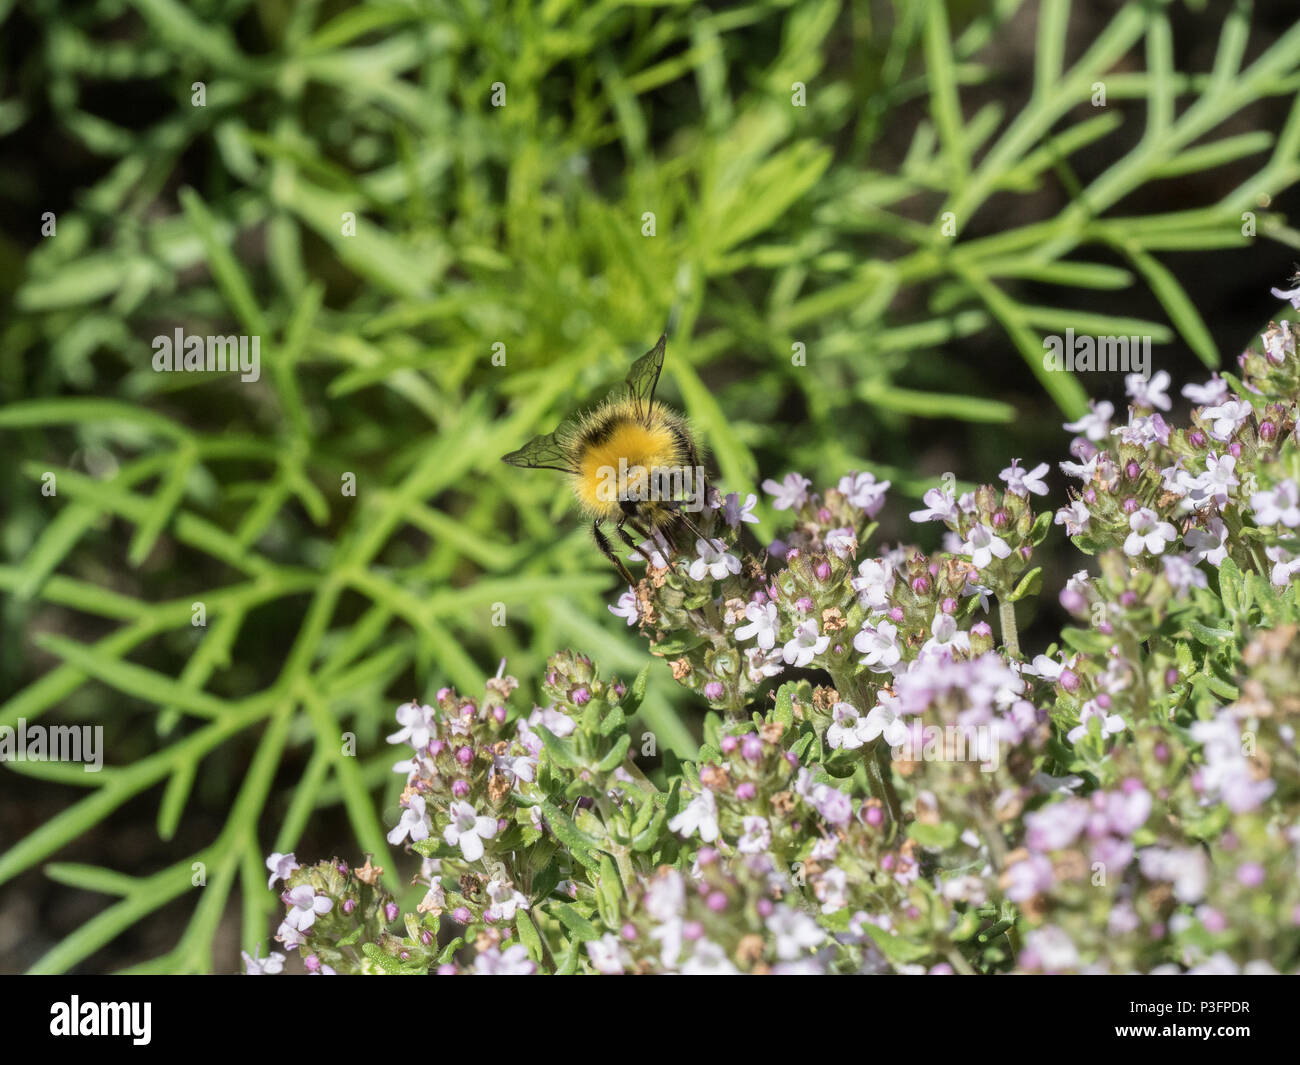 A close up of a buff tailed bumble bee feeding on thyme flowers - Stock Image